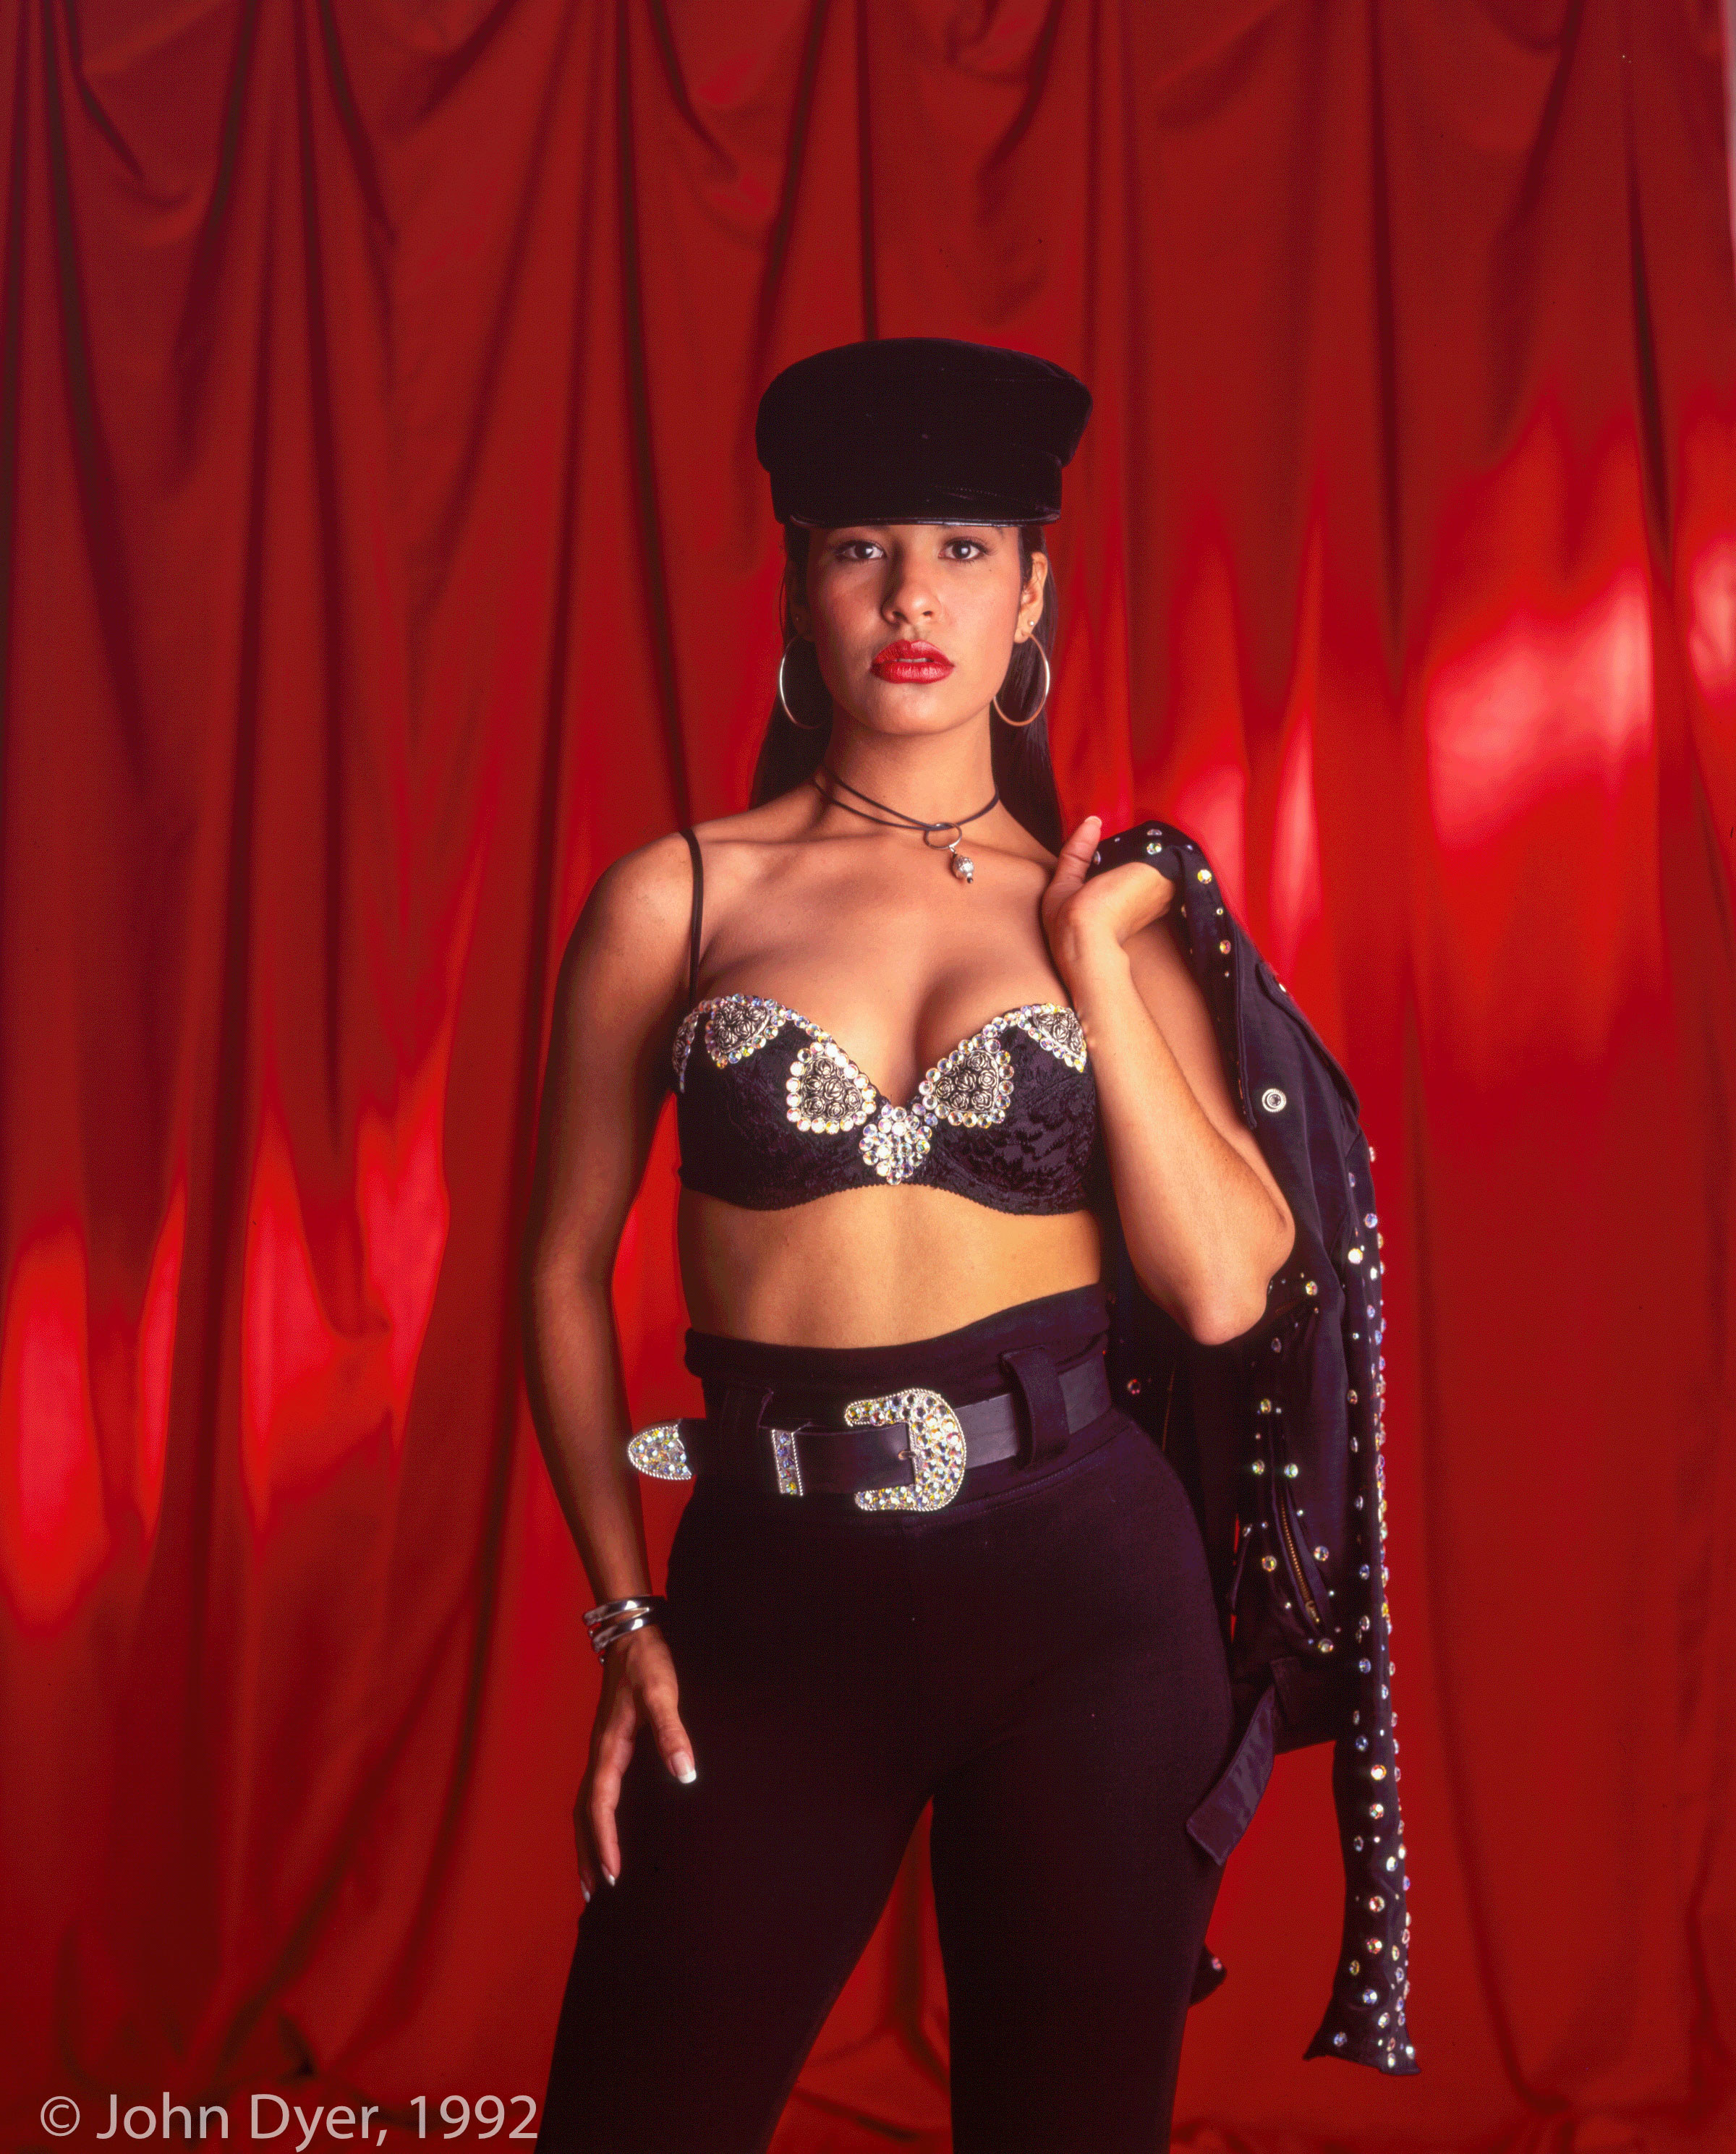 selena quintanilla posing for the camera while holding a jacket behind her